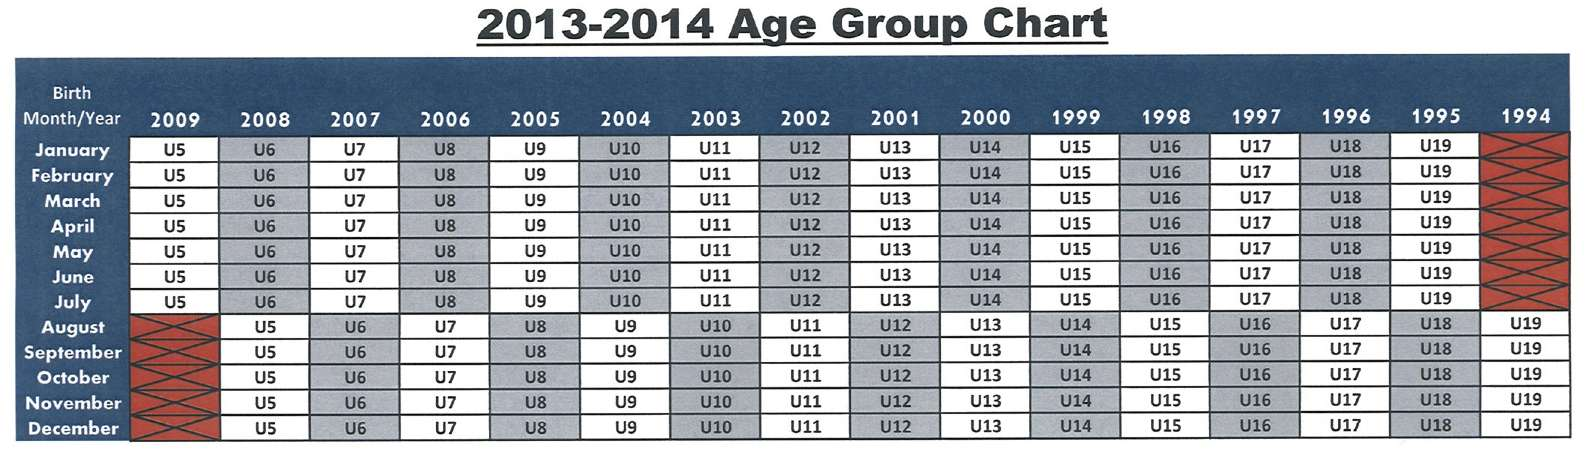 Fall 2013/Spring 2014 Age Matrix Chart